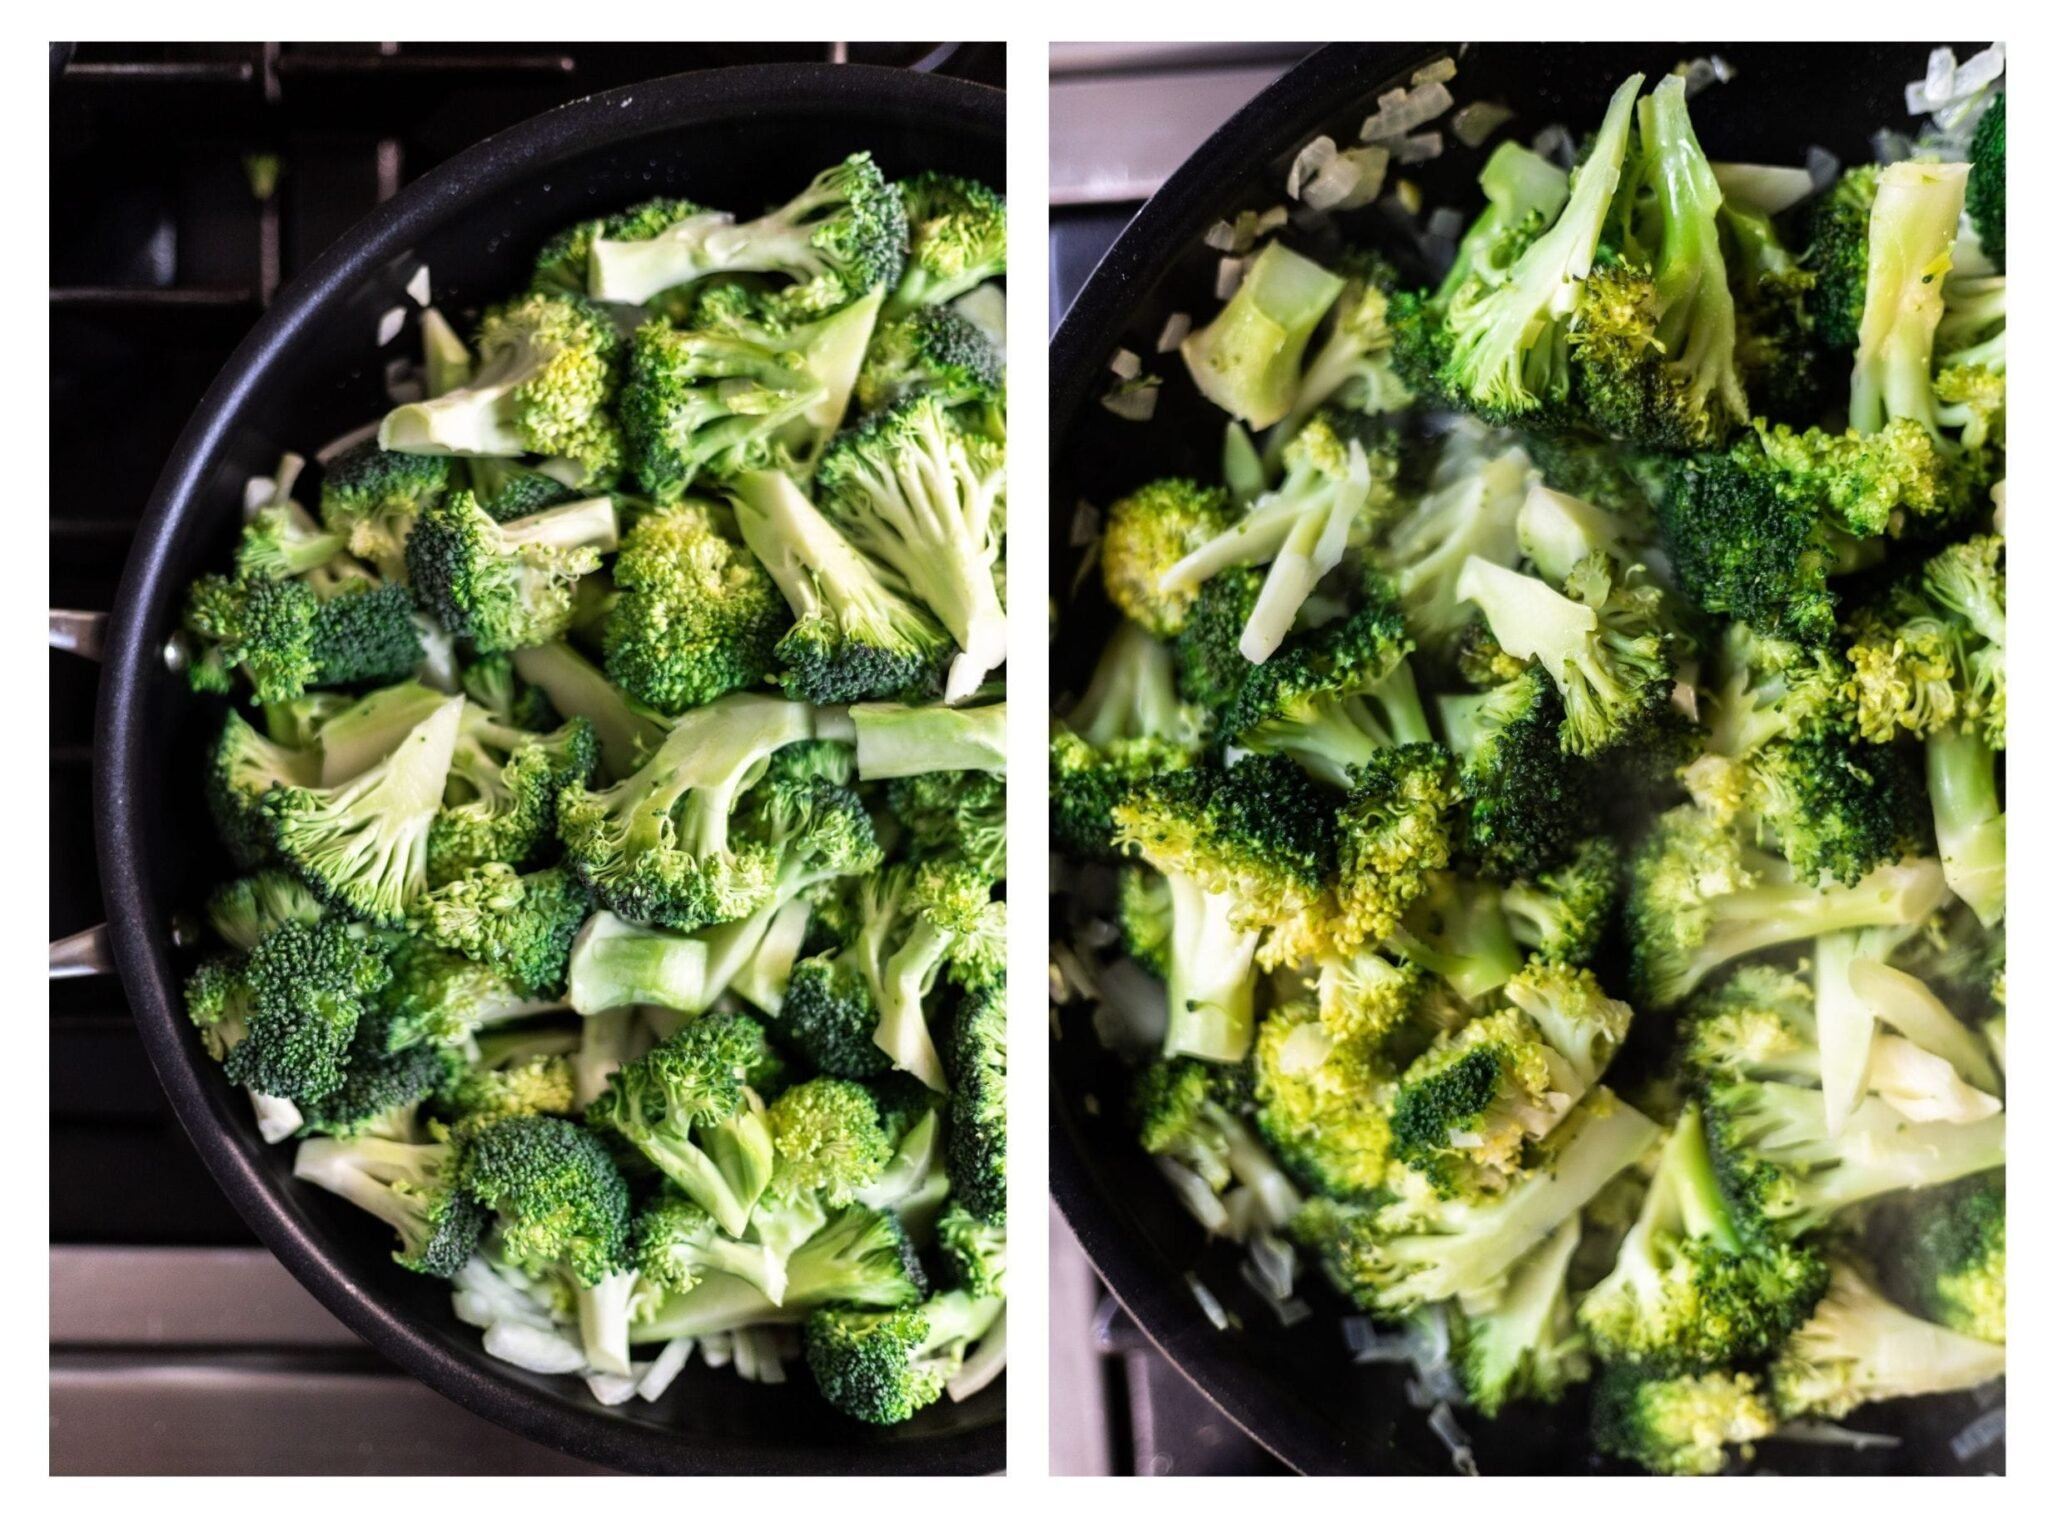 a photo collage of broccoli florets in a skillet and steamed broccoli florets in a skillet.